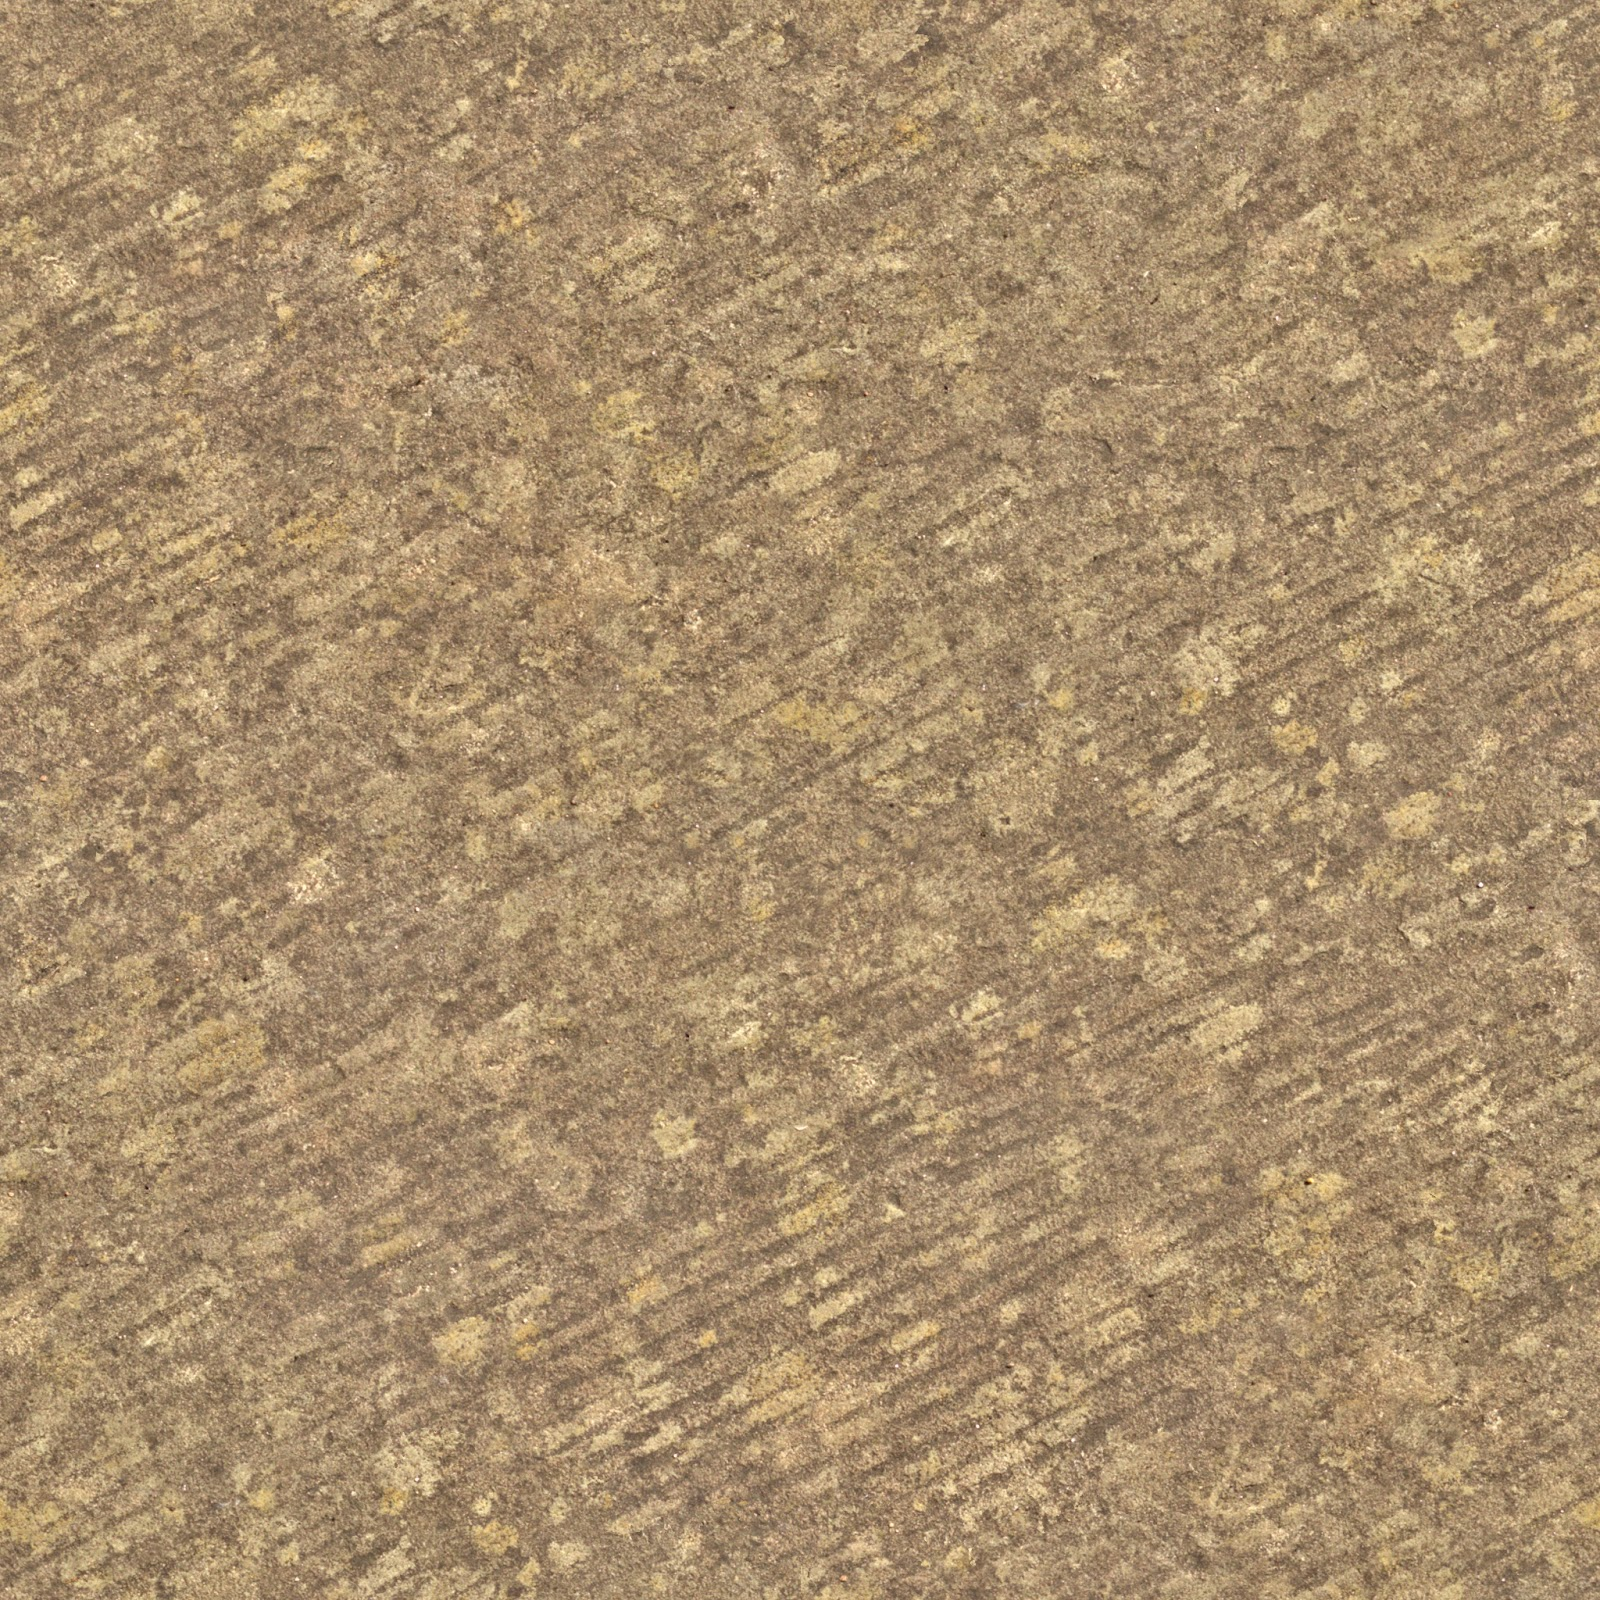 (Stone 1) rock cave mountain brown seamless texture 2048x2048